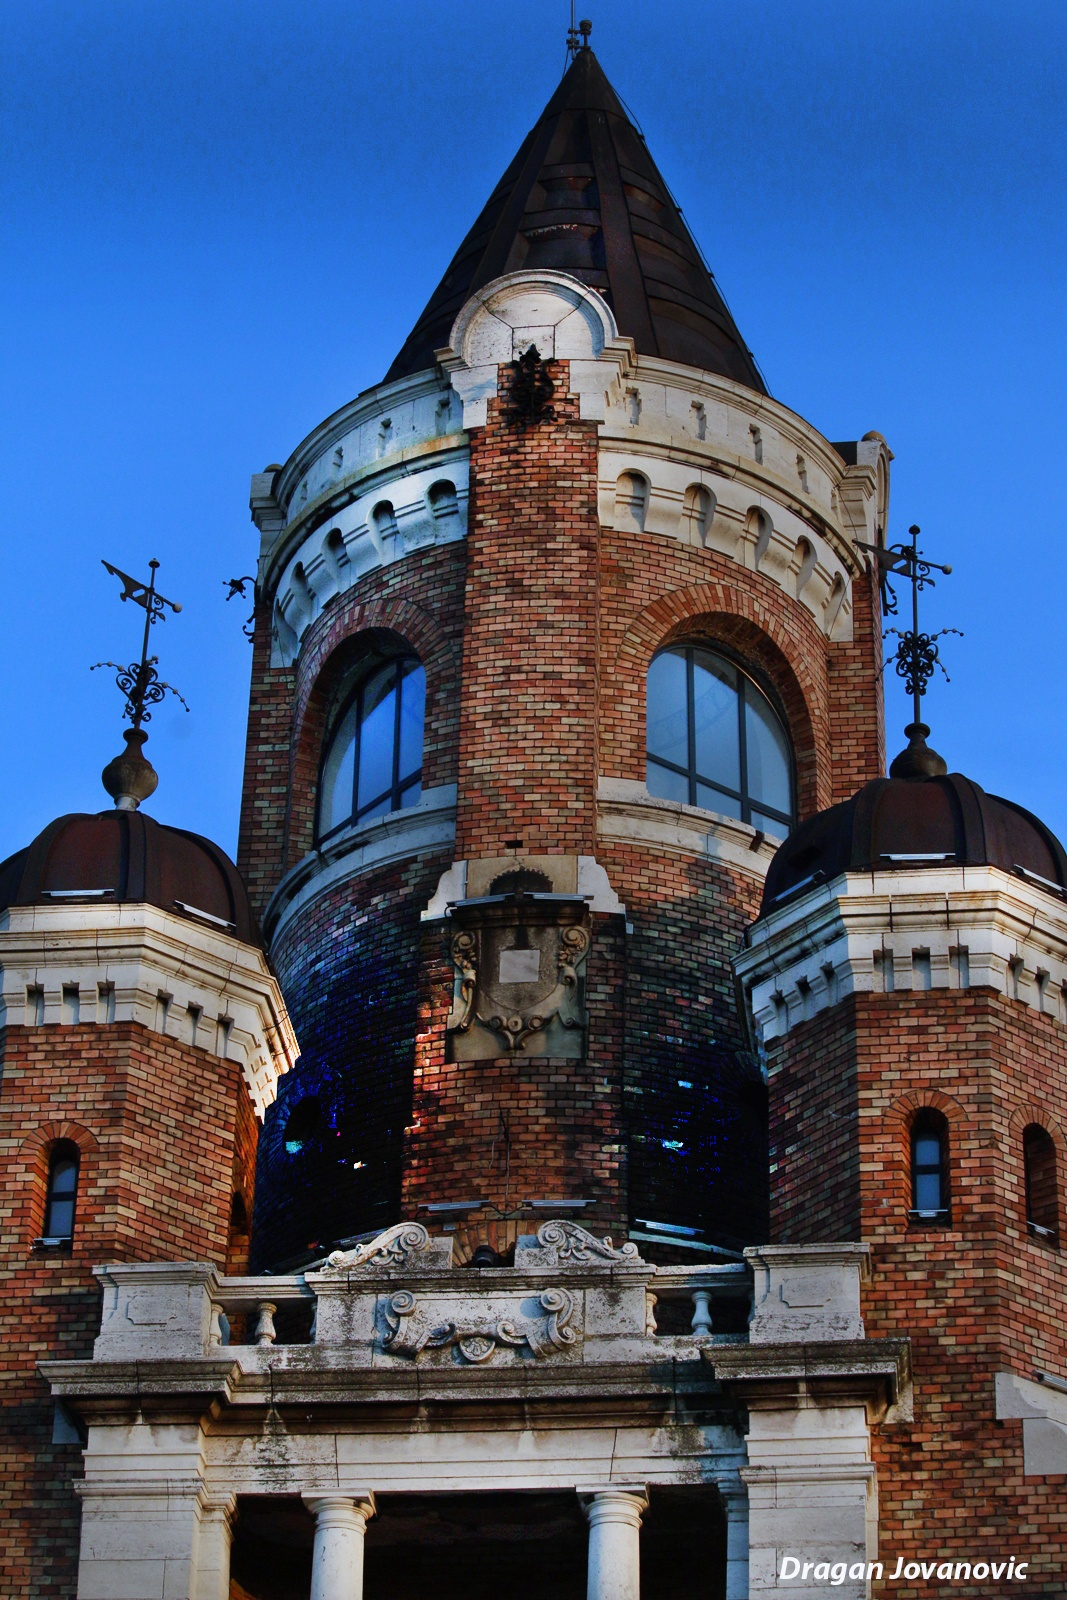 TOWER IN THE OLD PART OF BELGRADE - SERBIA by espanol1950